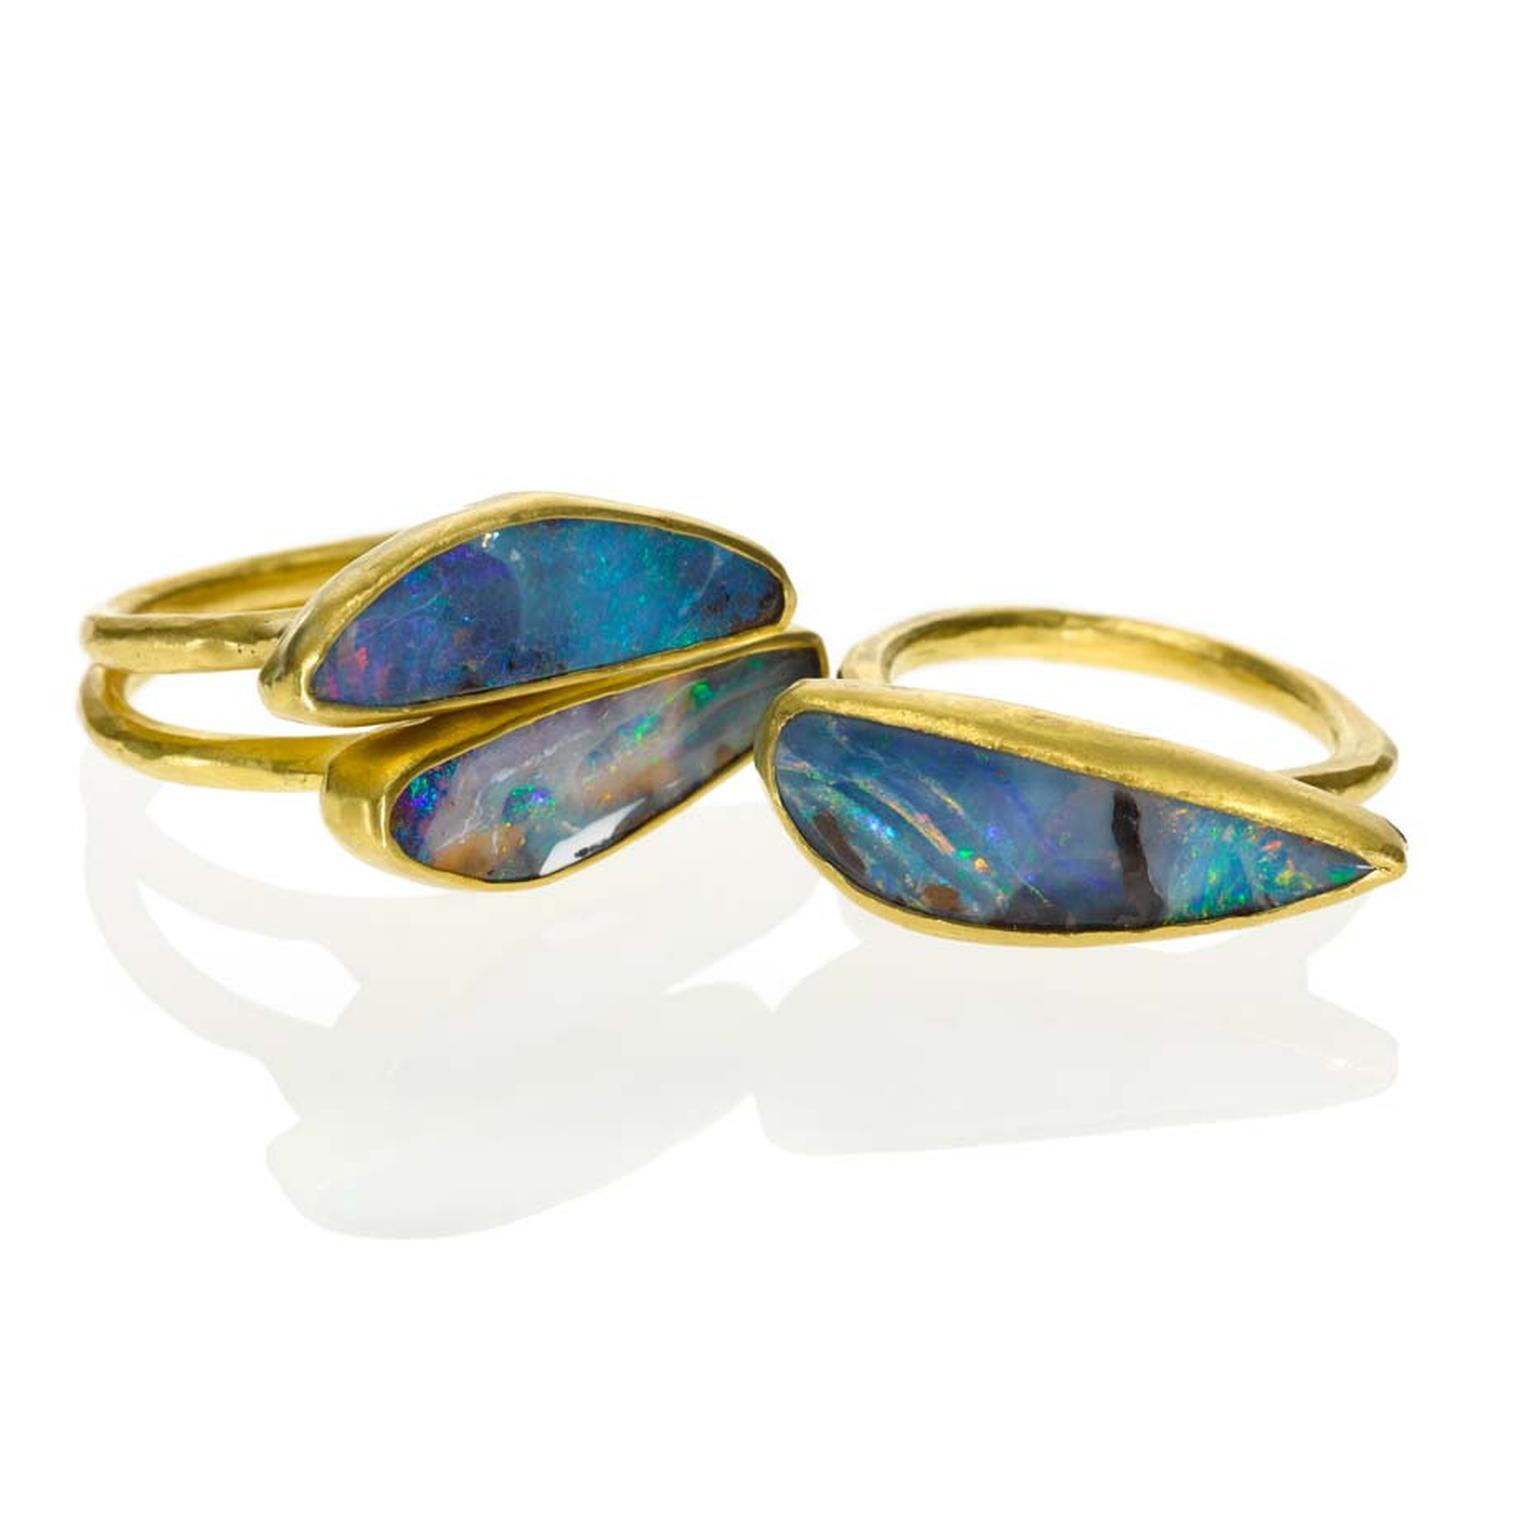 Margery Hirschey stackable opal and gold rings.